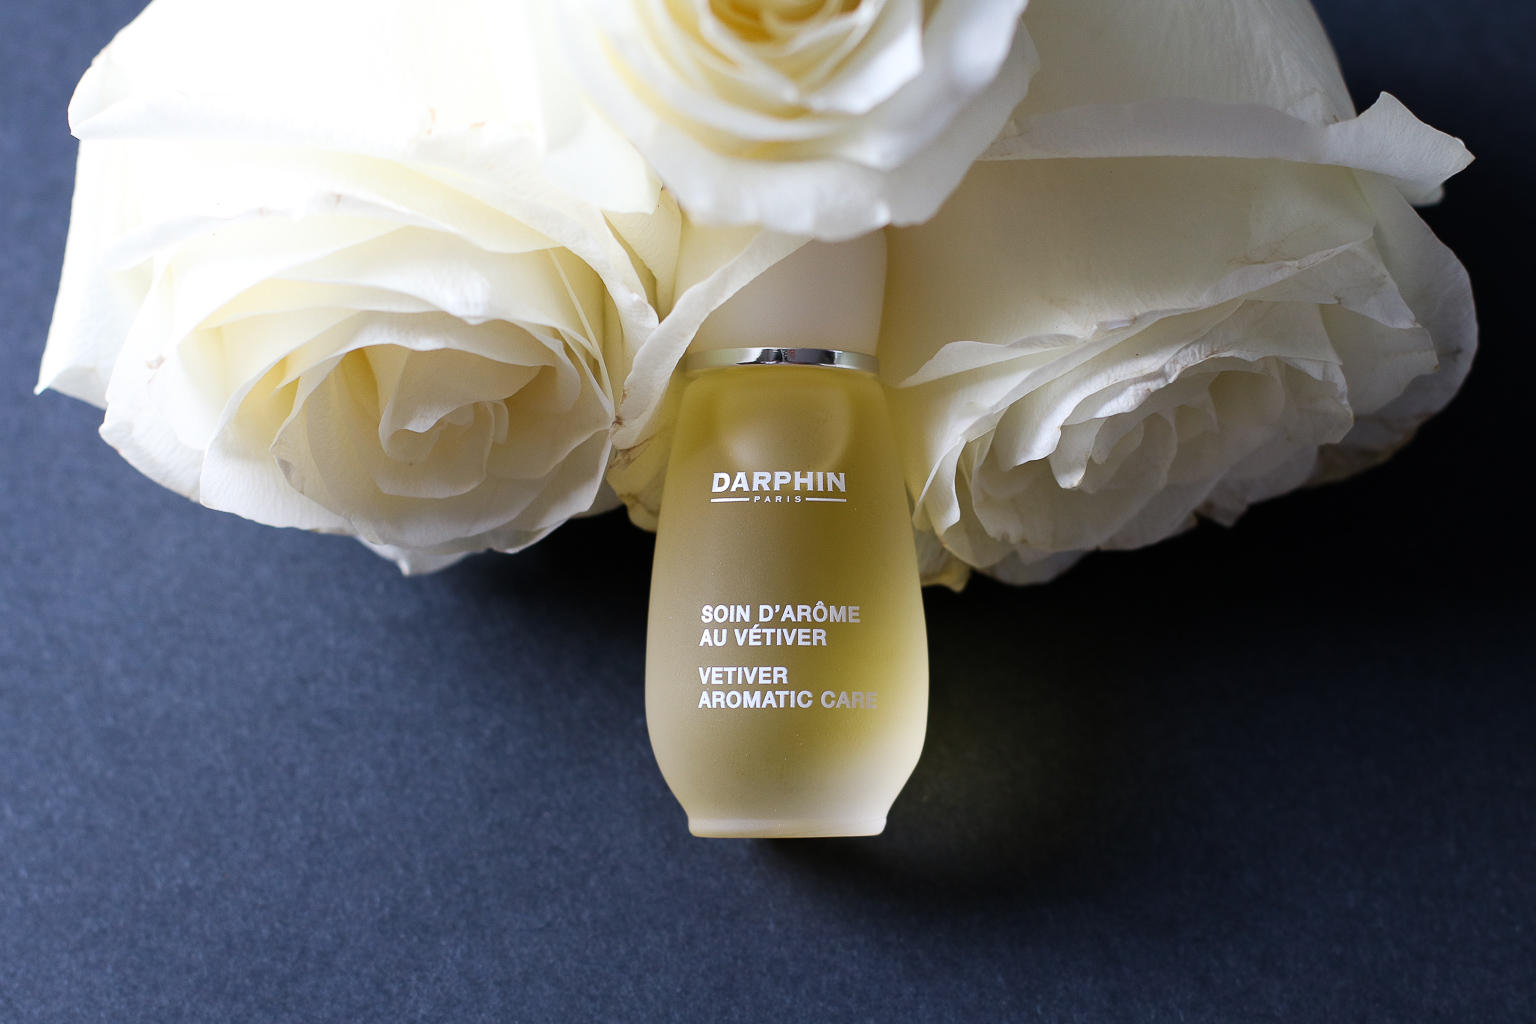 Darphin's latest offerings are dreamy: Prédermine Sculpting Night Cream , Vetiver Aromatic Care, All Day Hydrating Hand and Nail Cream